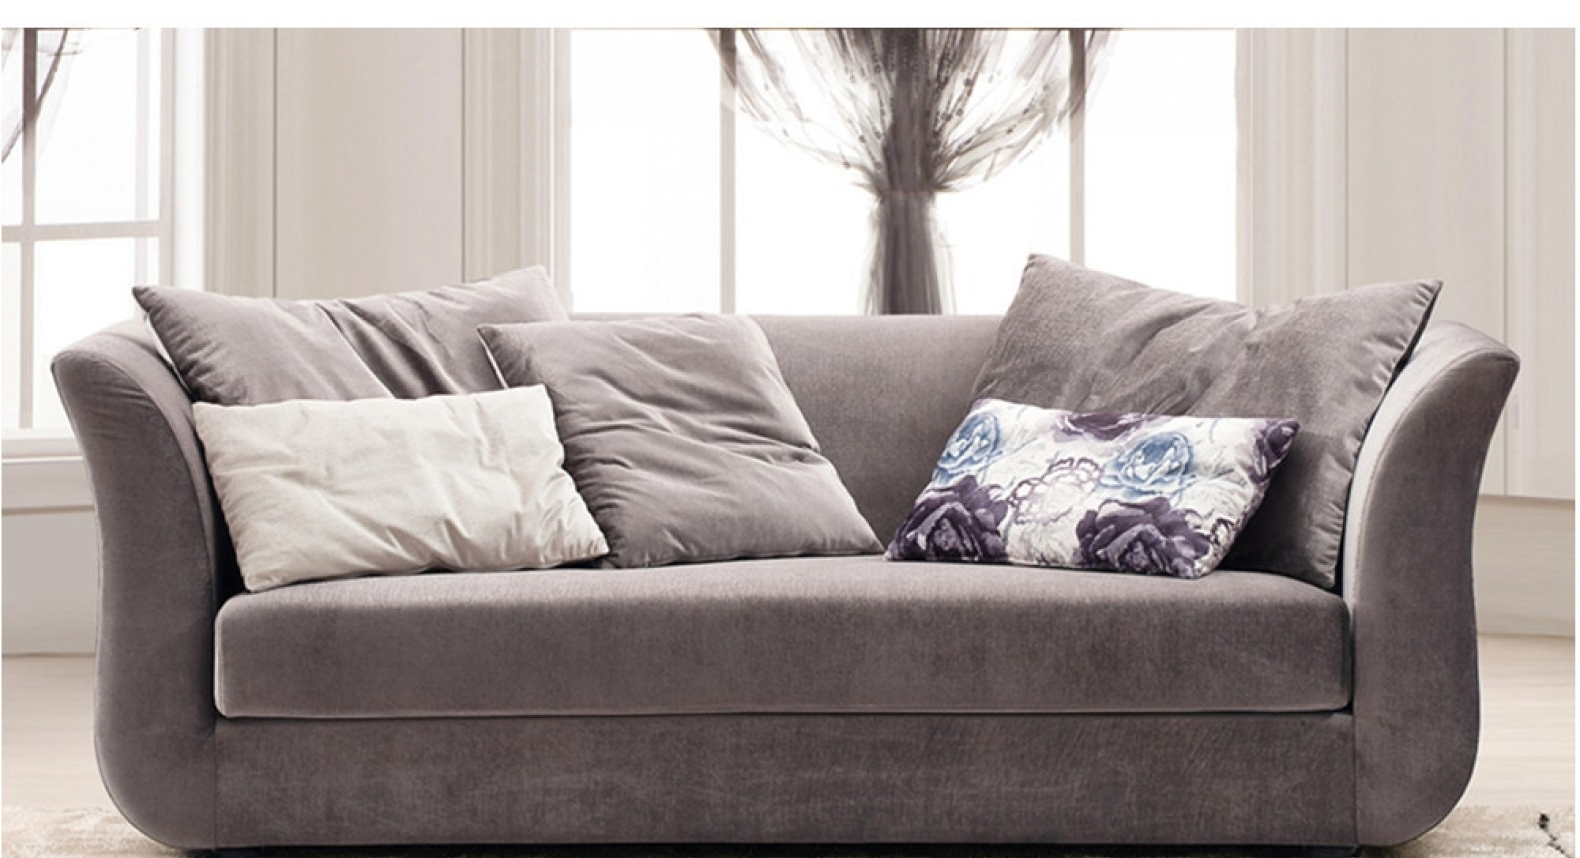 Well Known Sofa : Delightful Sofa With High Back And Sides Stylish Sofas With Throughout Sofas With High Backs (View 15 of 15)